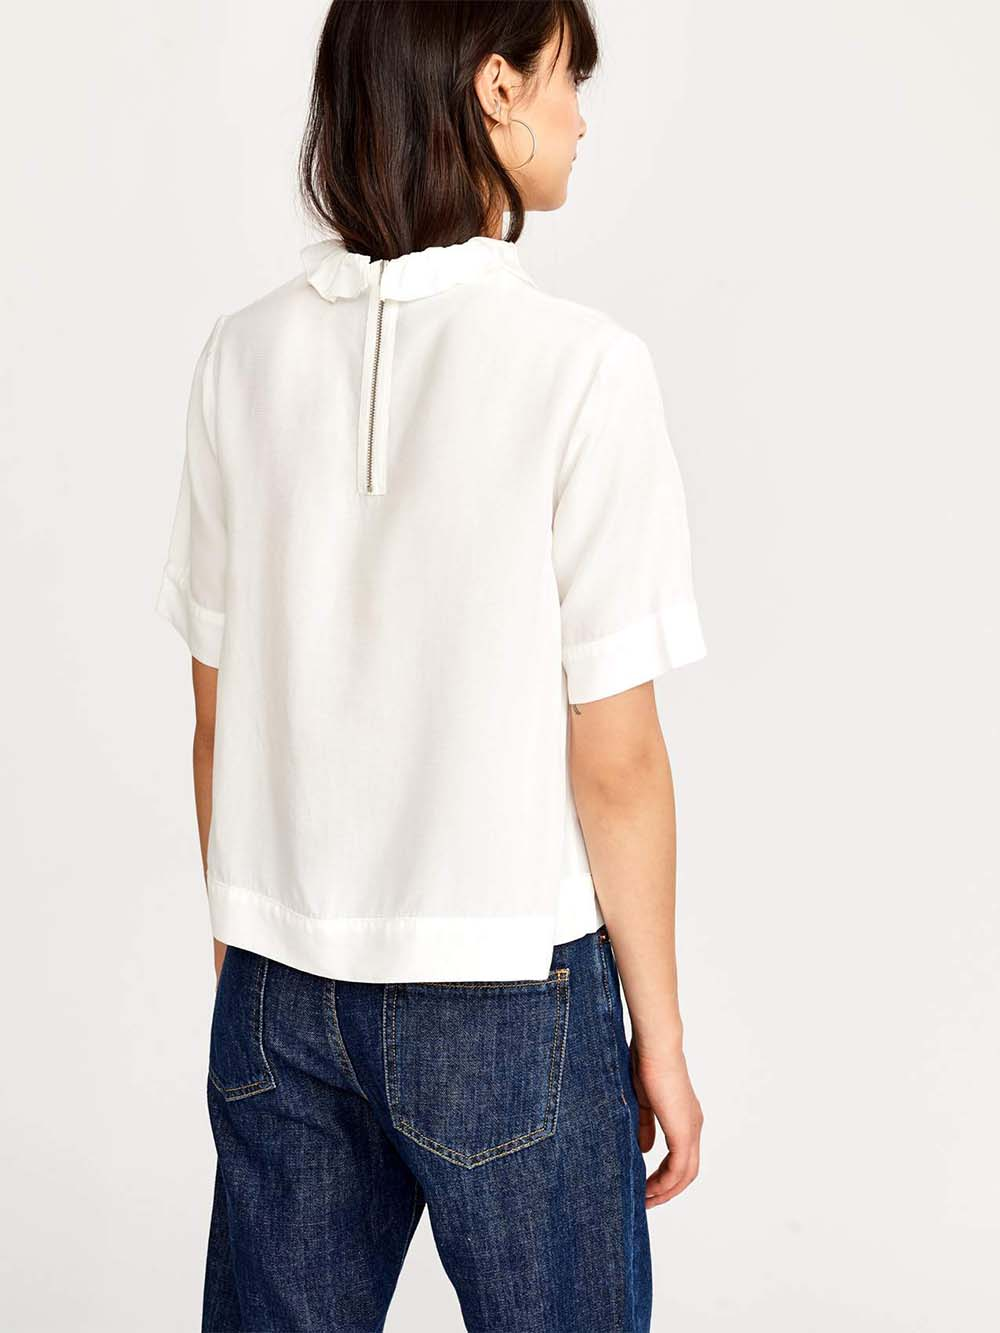 bellerose steffi shirt in natural